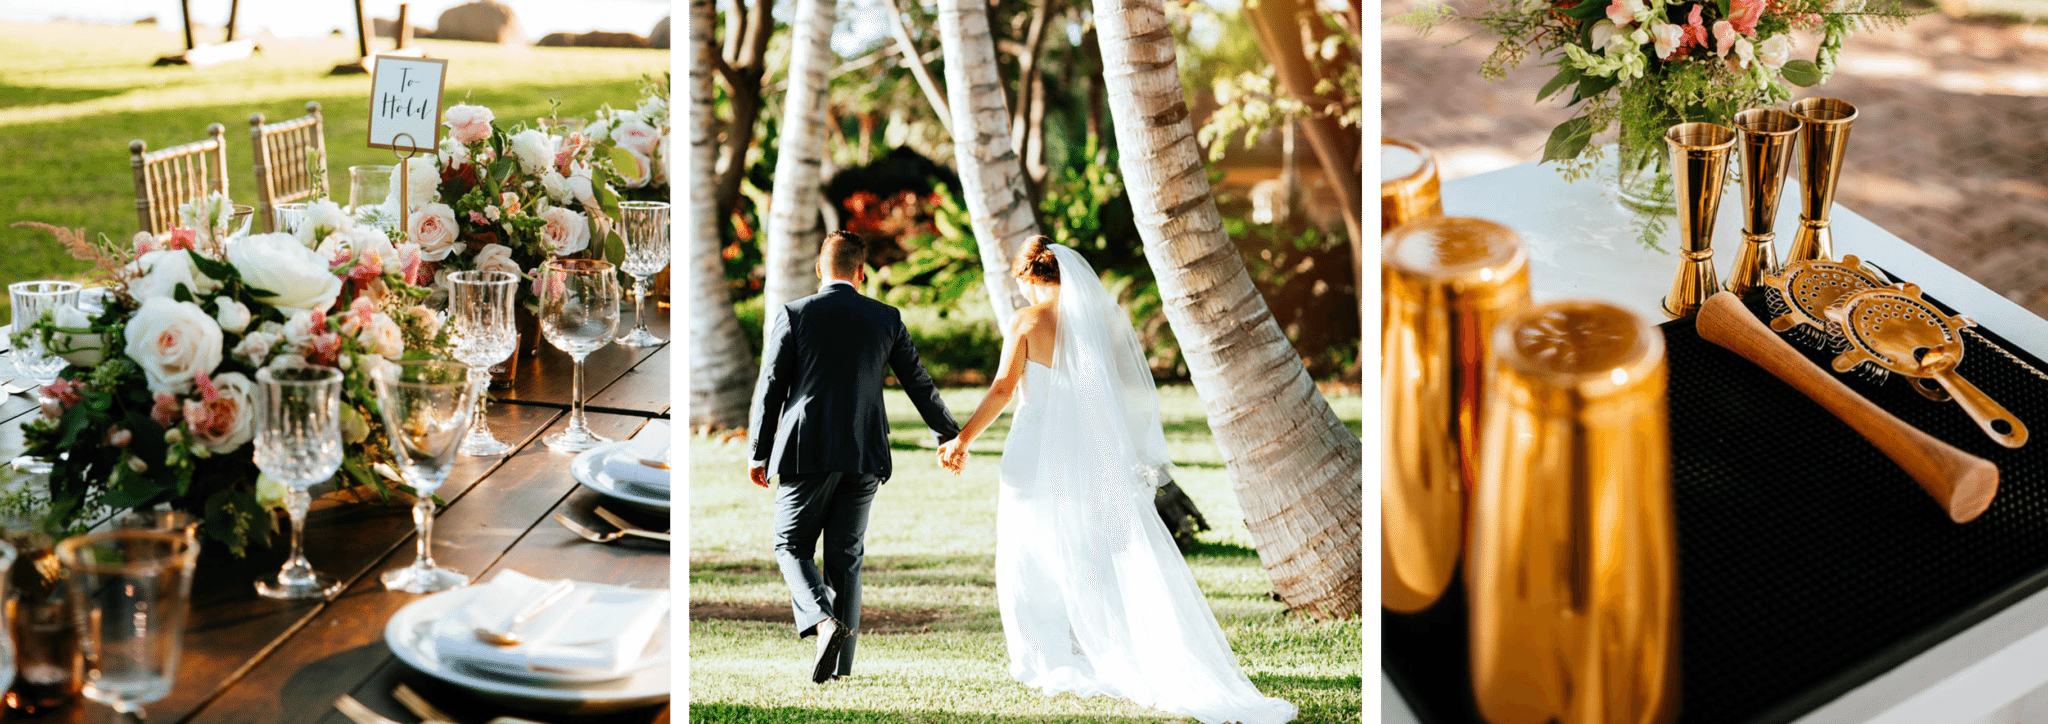 Hawaii Wedding Details | Destination Wedding Planner Maui | Maui's Angels